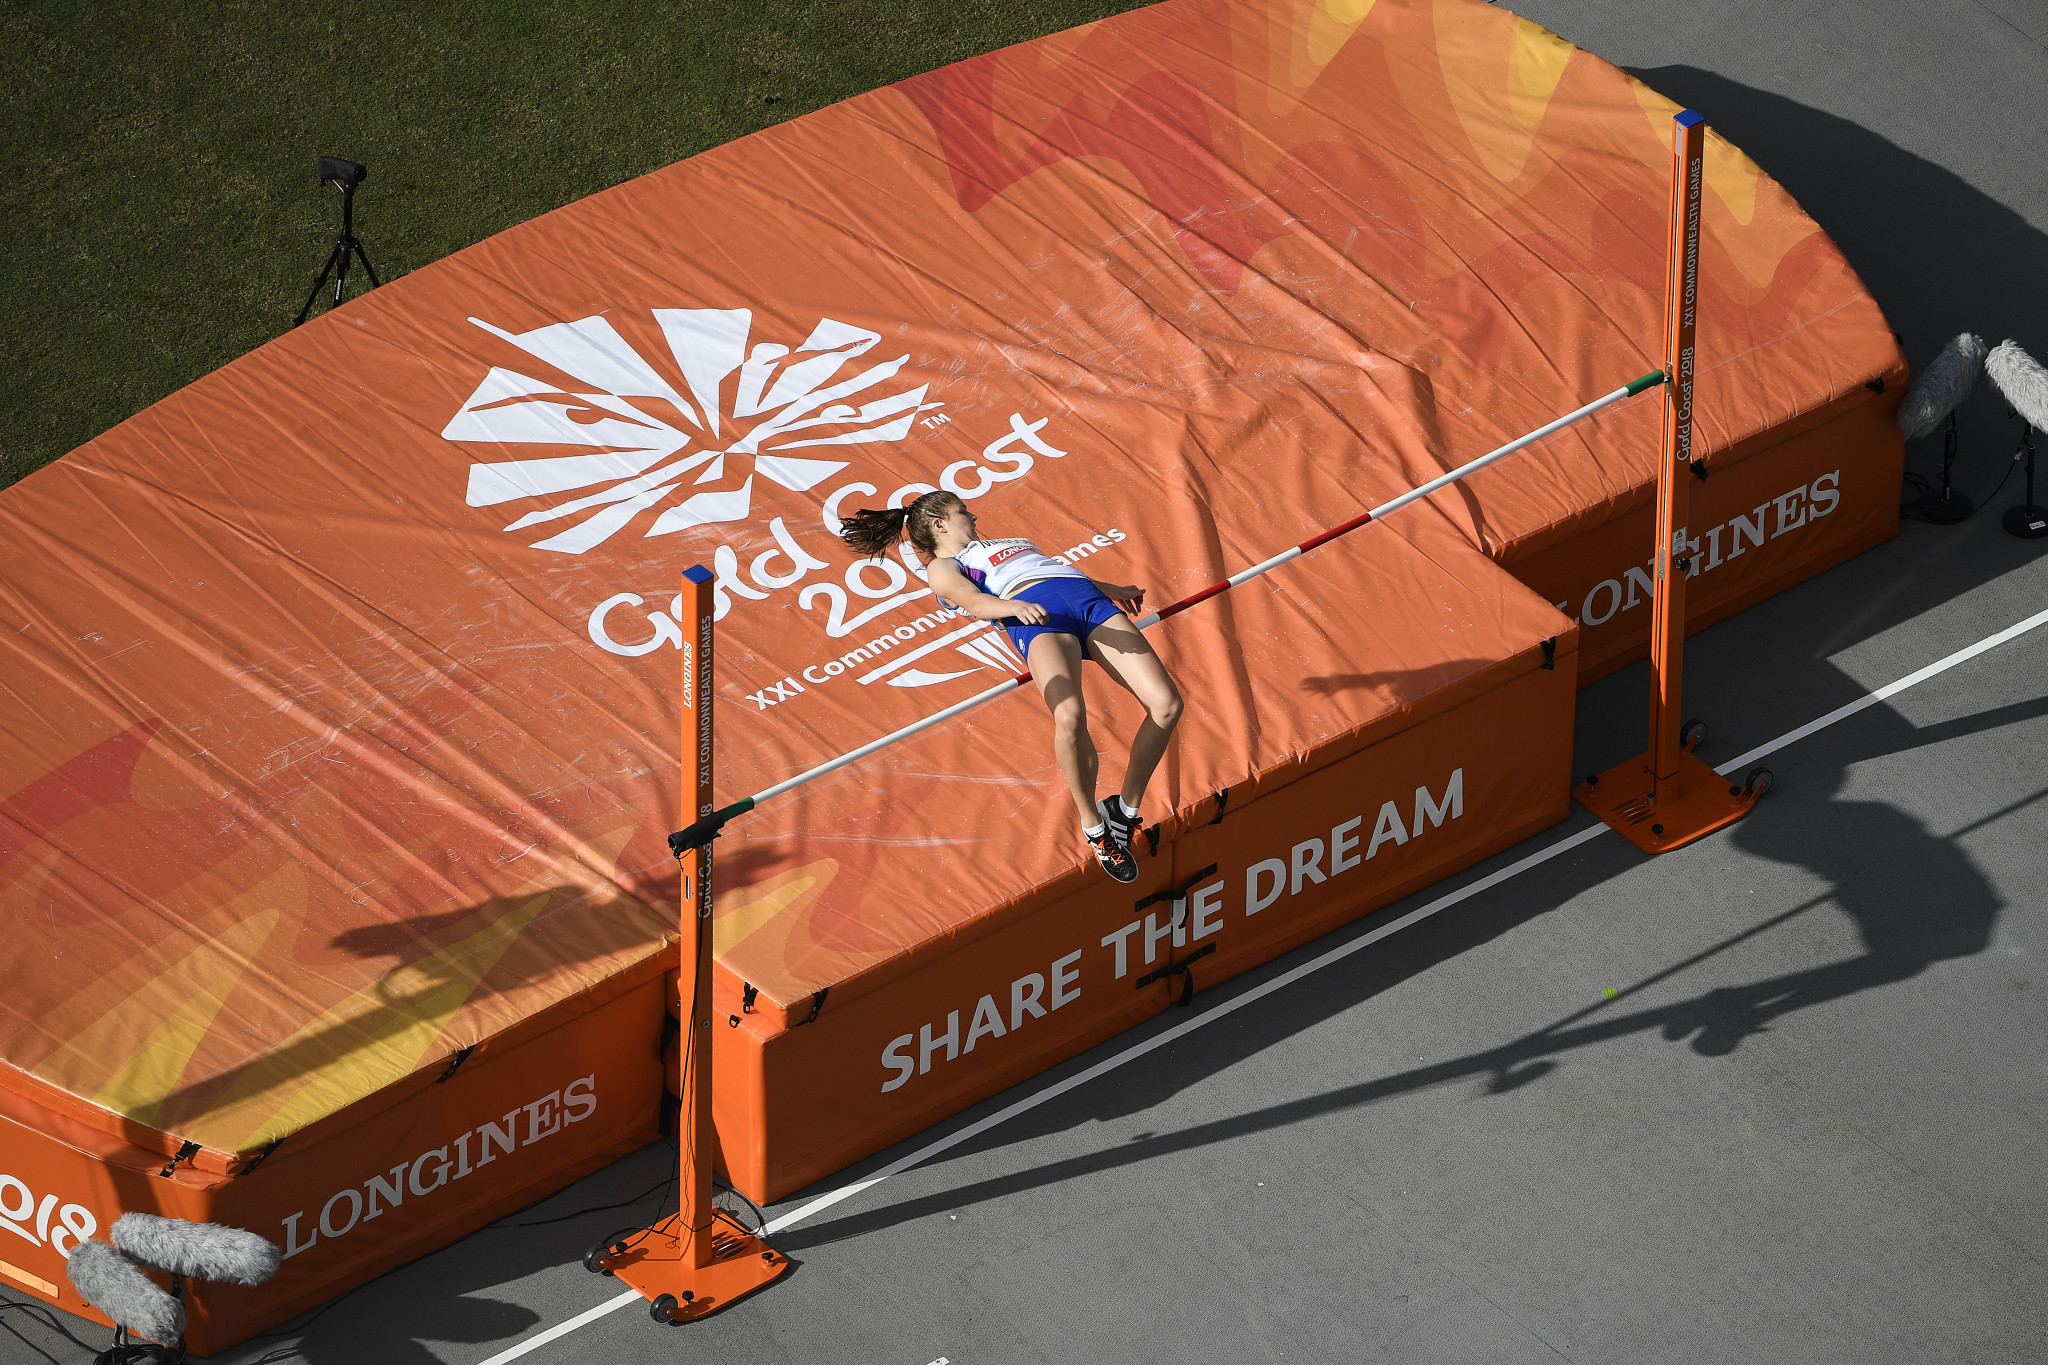 Gold Coast Mayor wants city to bid for IAAF World Championships after Commonwealth Games